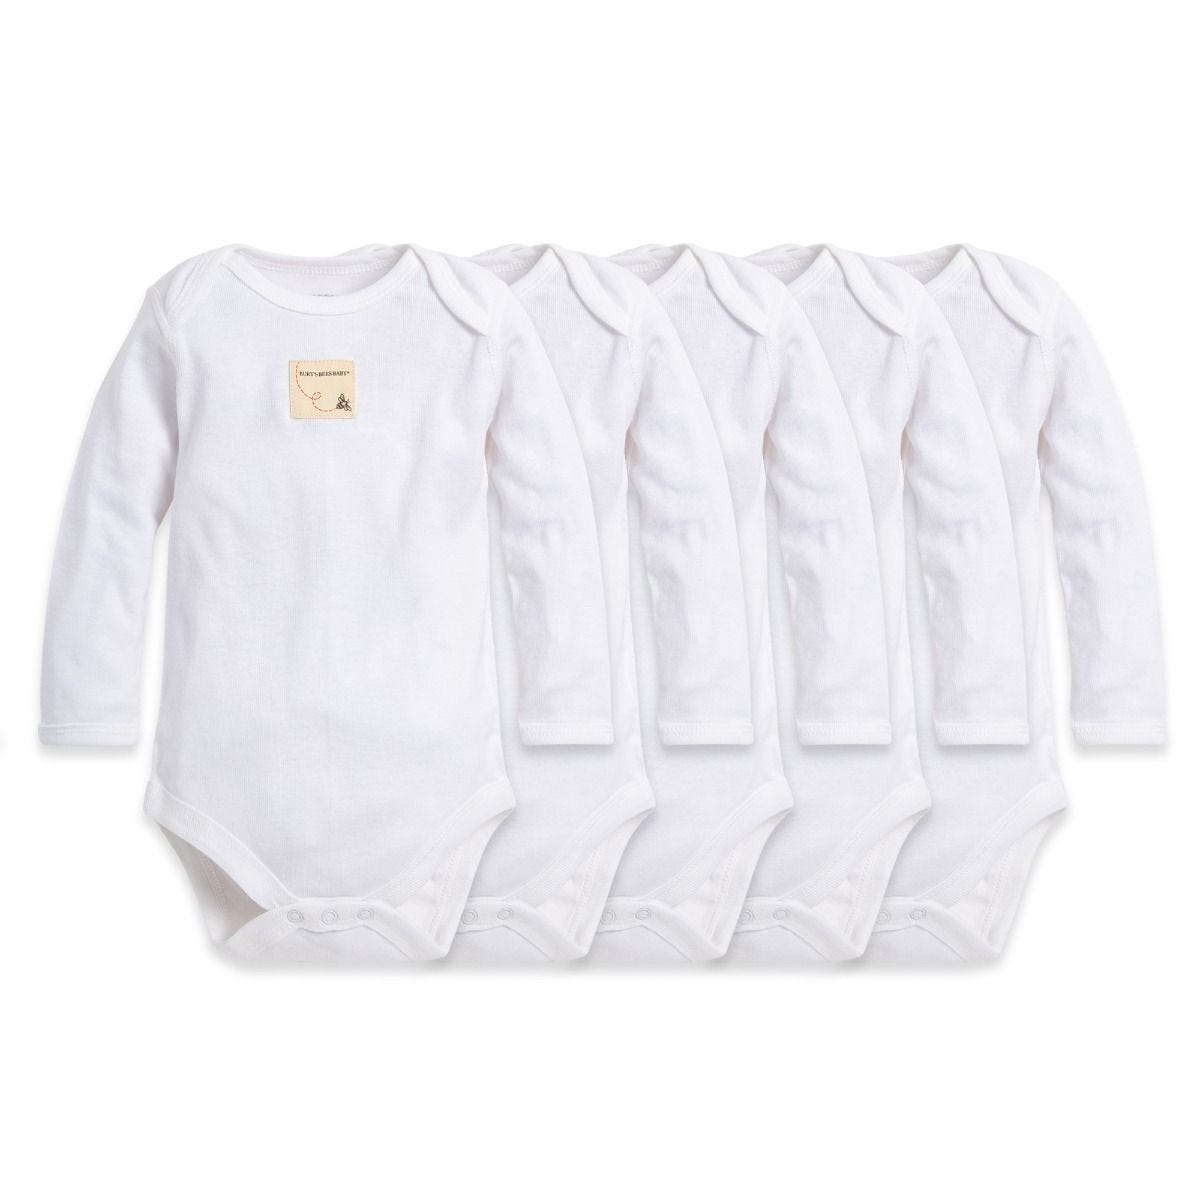 Bee Essentials Organic Long Sleeve Baby Bodysuit 5 Pack